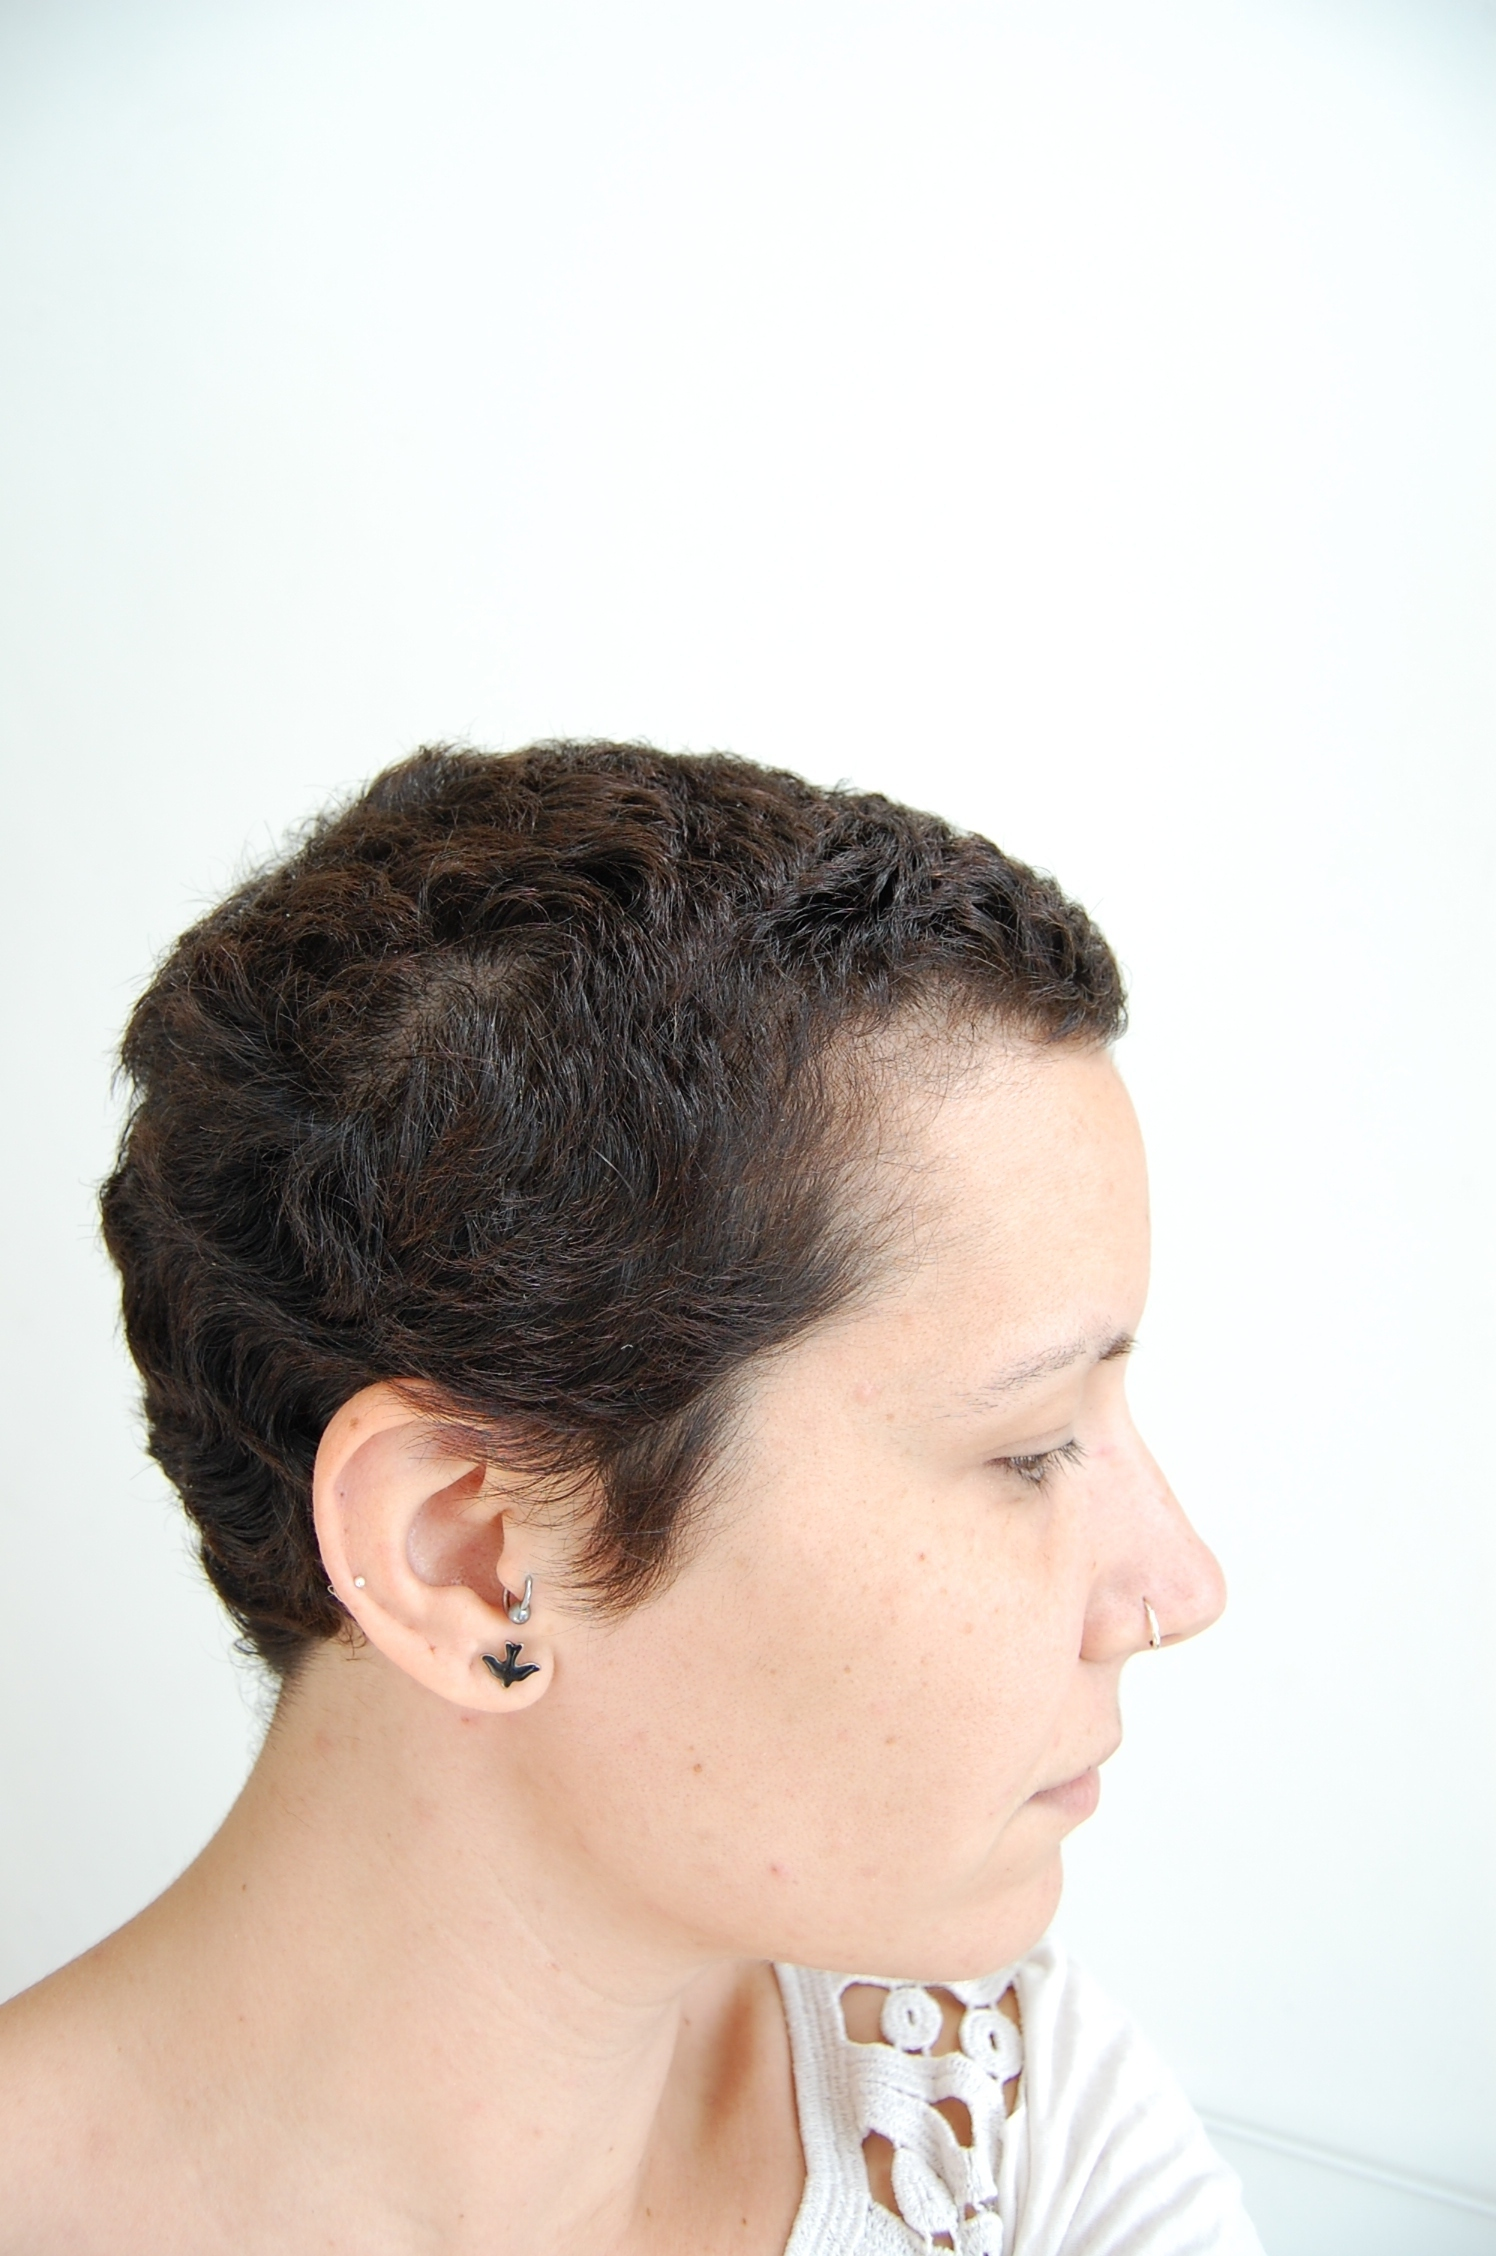 Hairstyles For Hair Growing Back After Chemo Hair Growth After Chemo One Girl One Head And Her